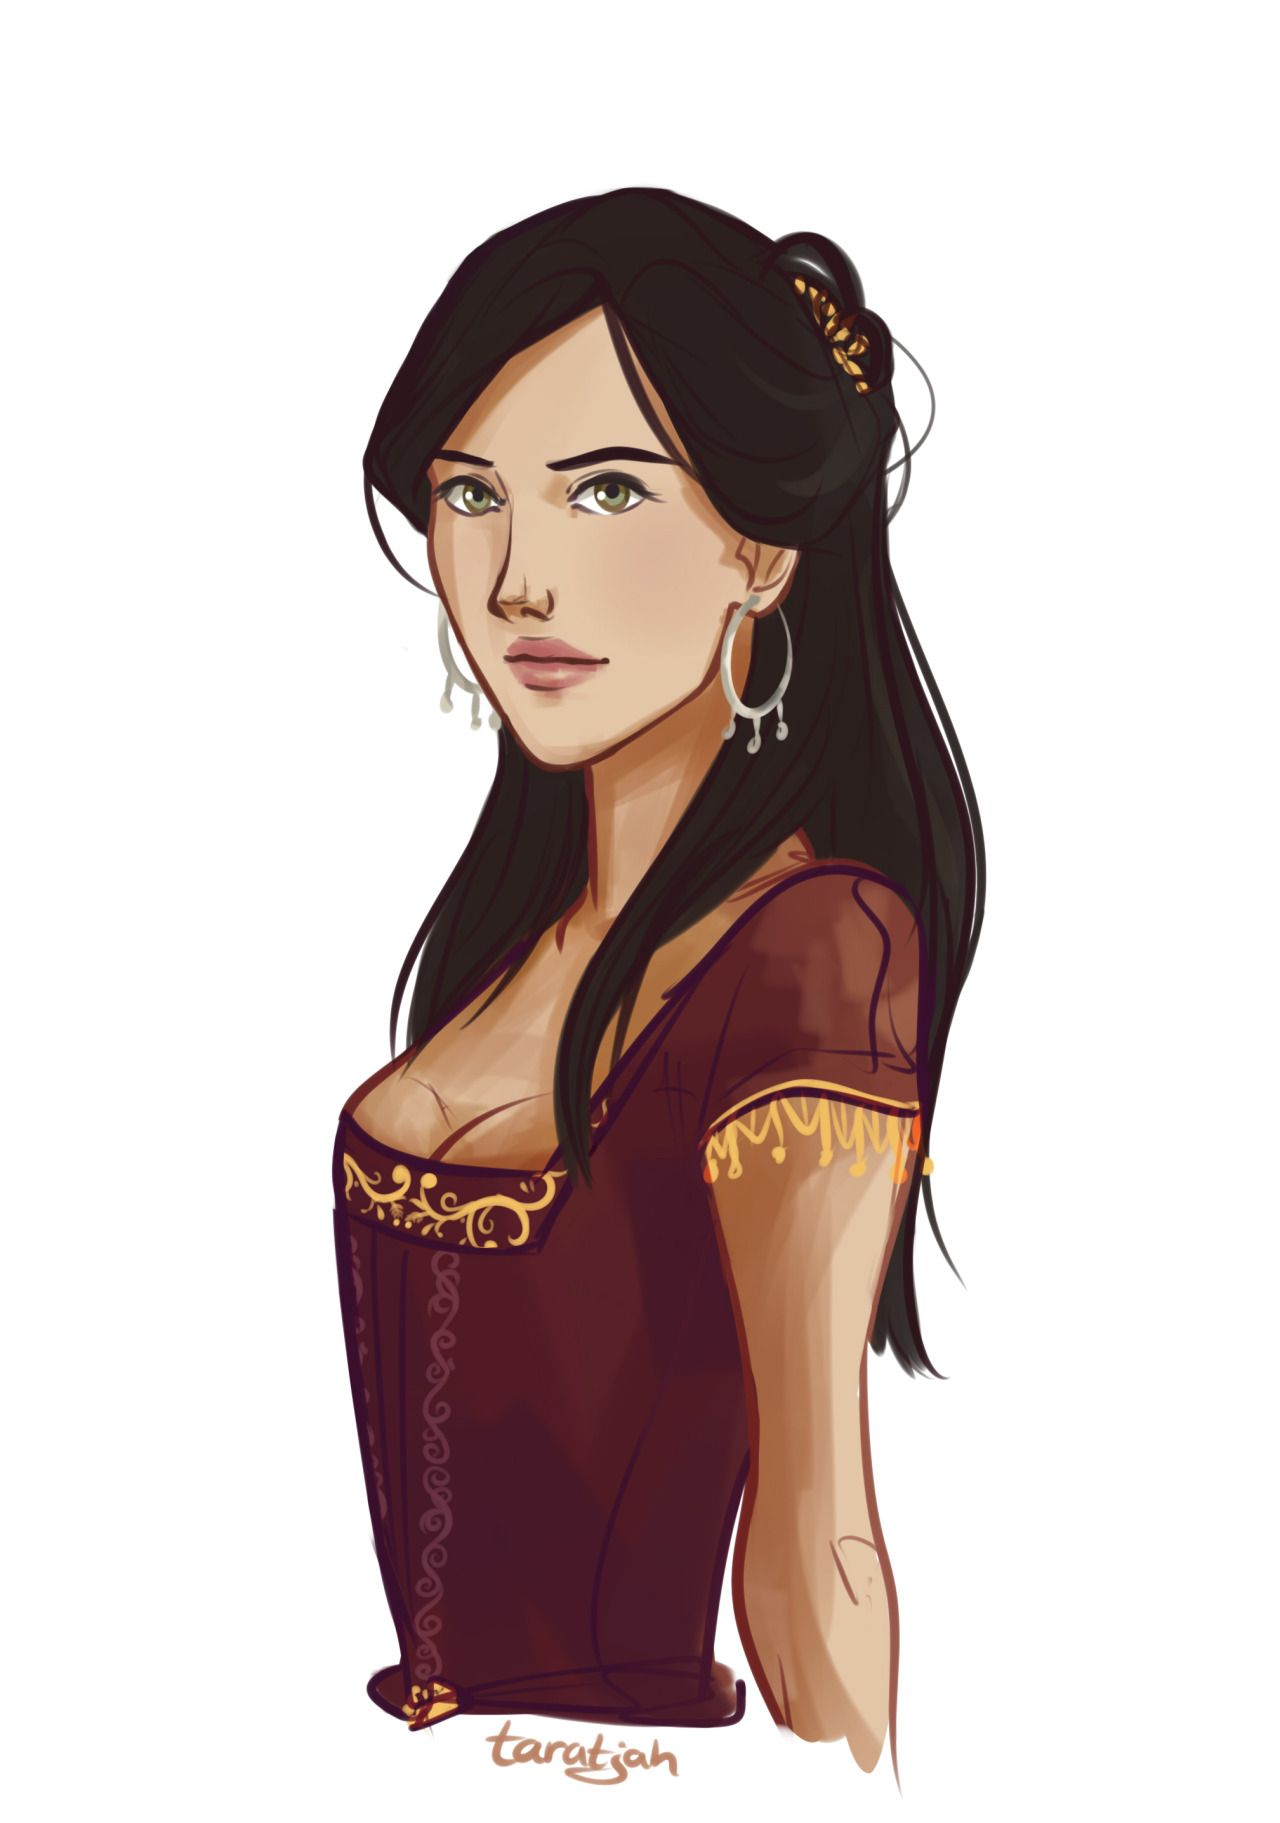 Lysandra Was So Badass In Queen Of Shadows, She Quickly Became One Of My  Favs Lysandra Is From The Throne Of Glass Series By Sarah J Maas ~used